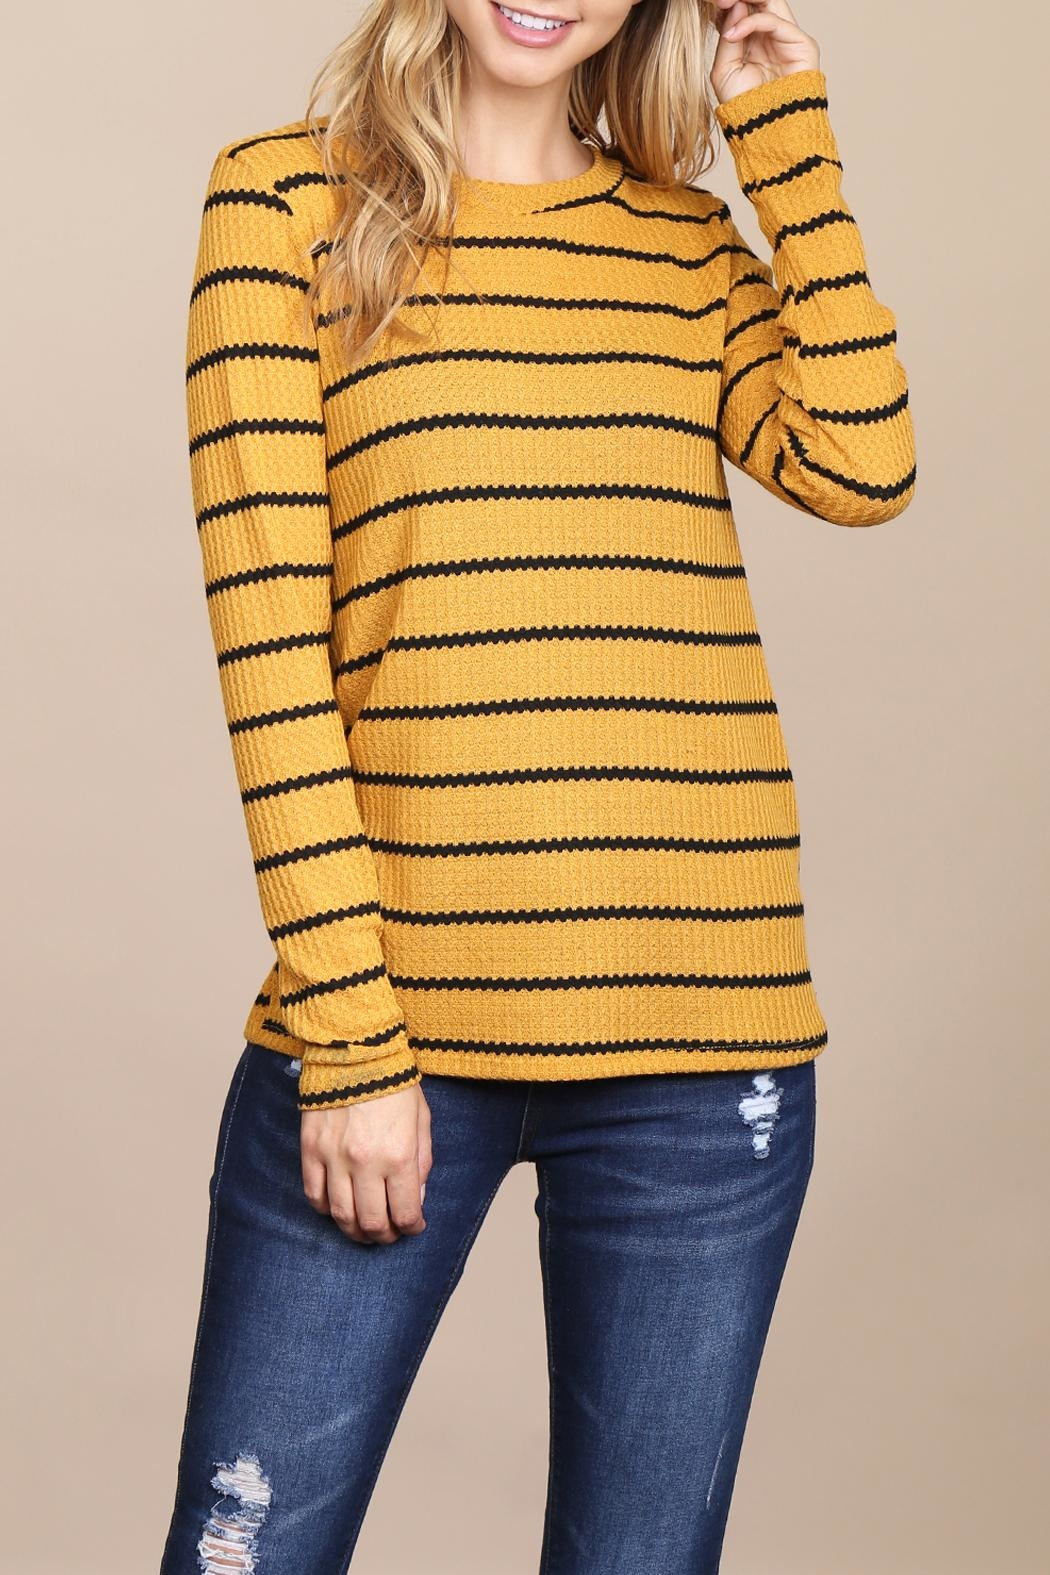 Riah Fashion Long-Sleeved-Round-Neck-Striped Waffle Top - Front Cropped Image